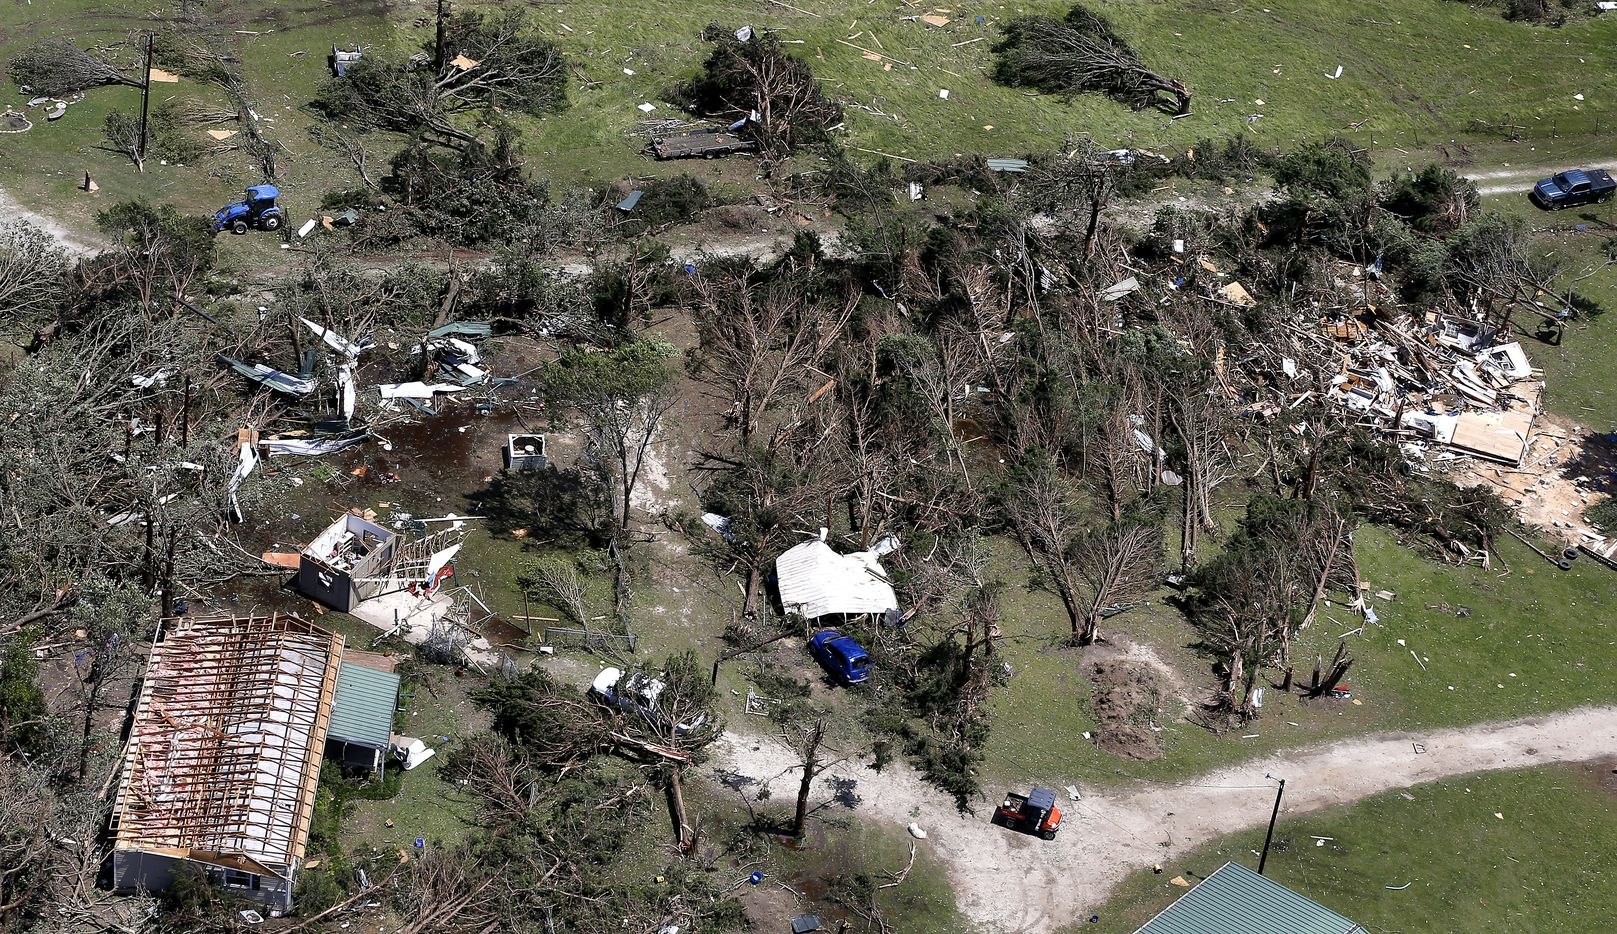 Damaged houses and downed trees lie flattened in Canton, Texas, Sunday, April 30, 2017. Severe storms including tornadoes swept through several small towns killed at least four people in East Texas yesterday.